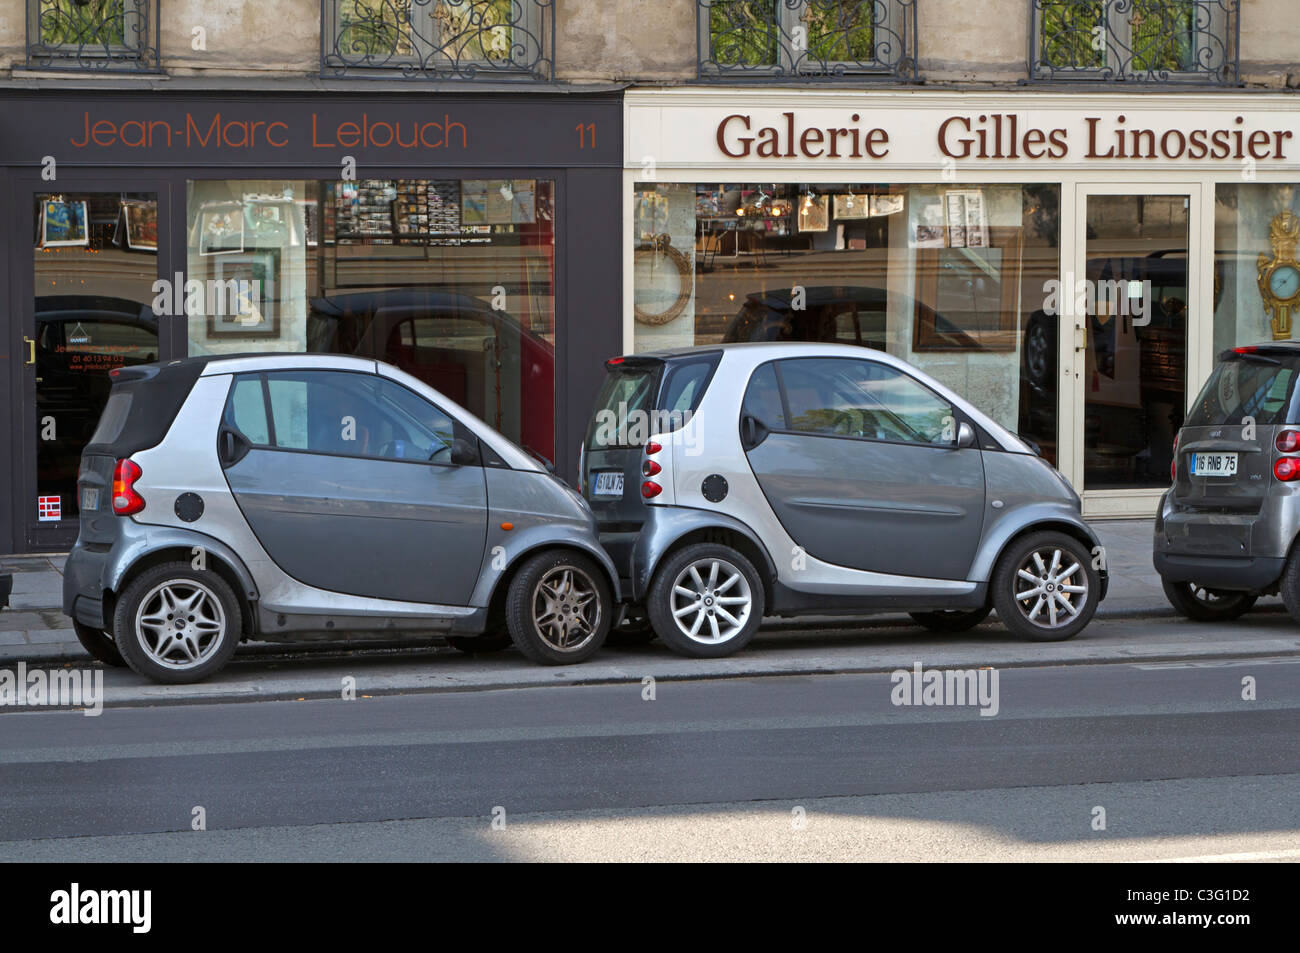 parking in paris smart cars are parked touching each other in tight stock photo royalty free. Black Bedroom Furniture Sets. Home Design Ideas